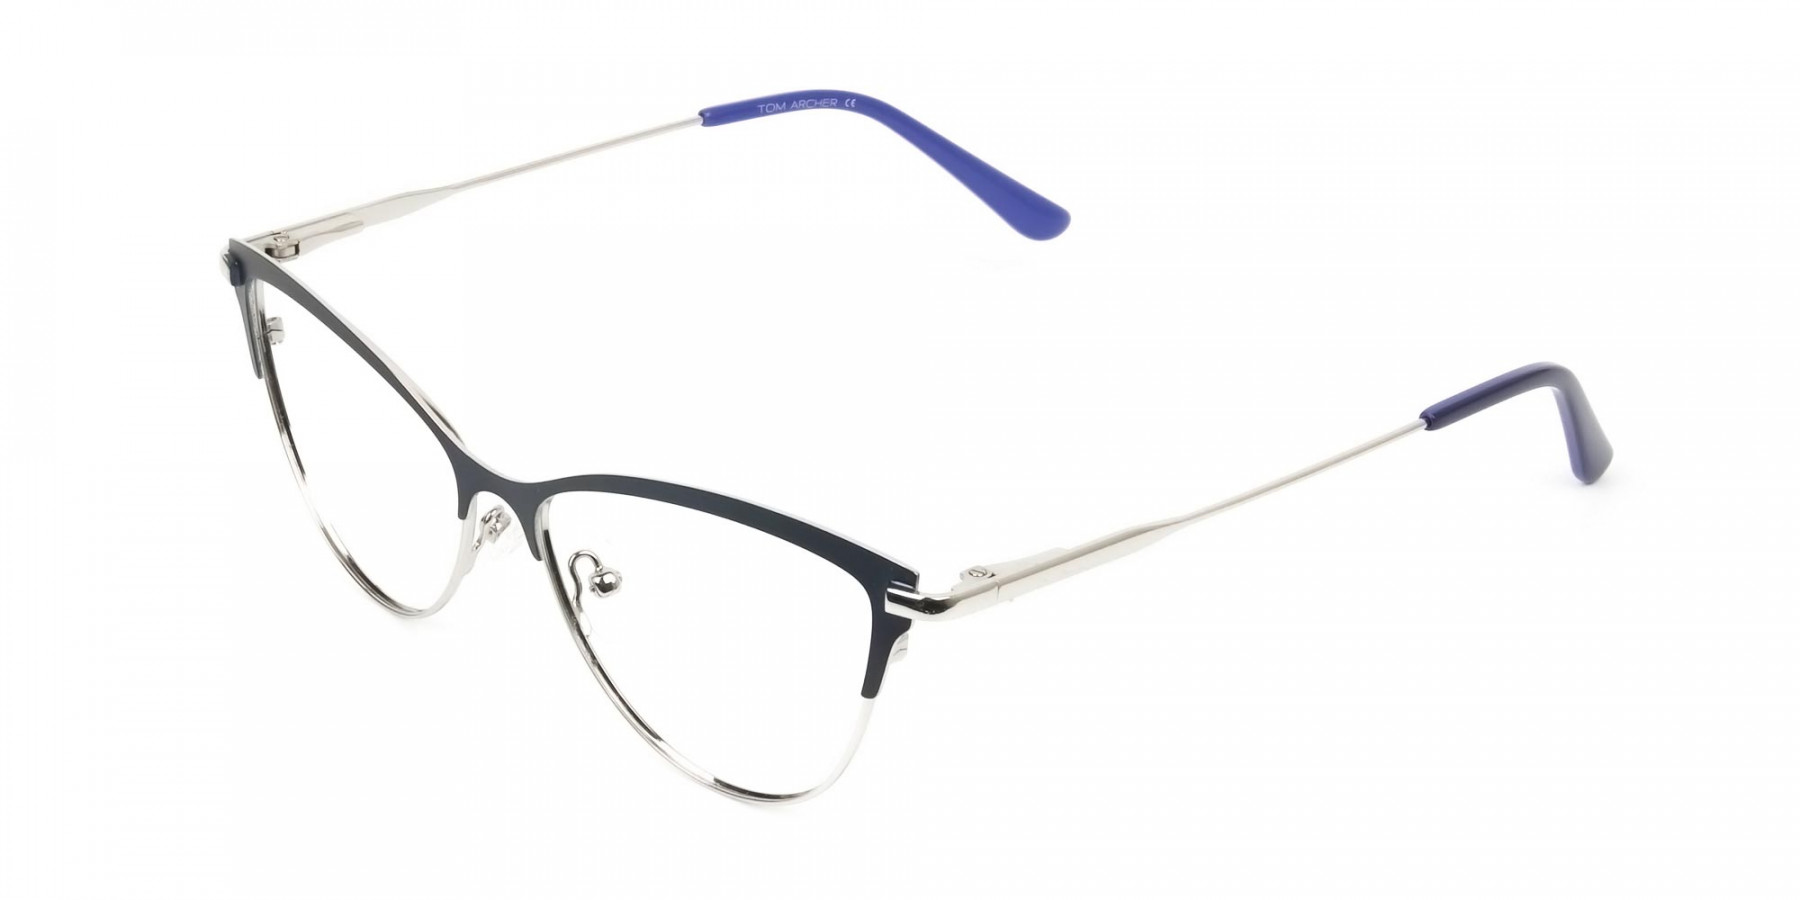 Navy Blue and Silver Metal Cat Eye Glasses - 1